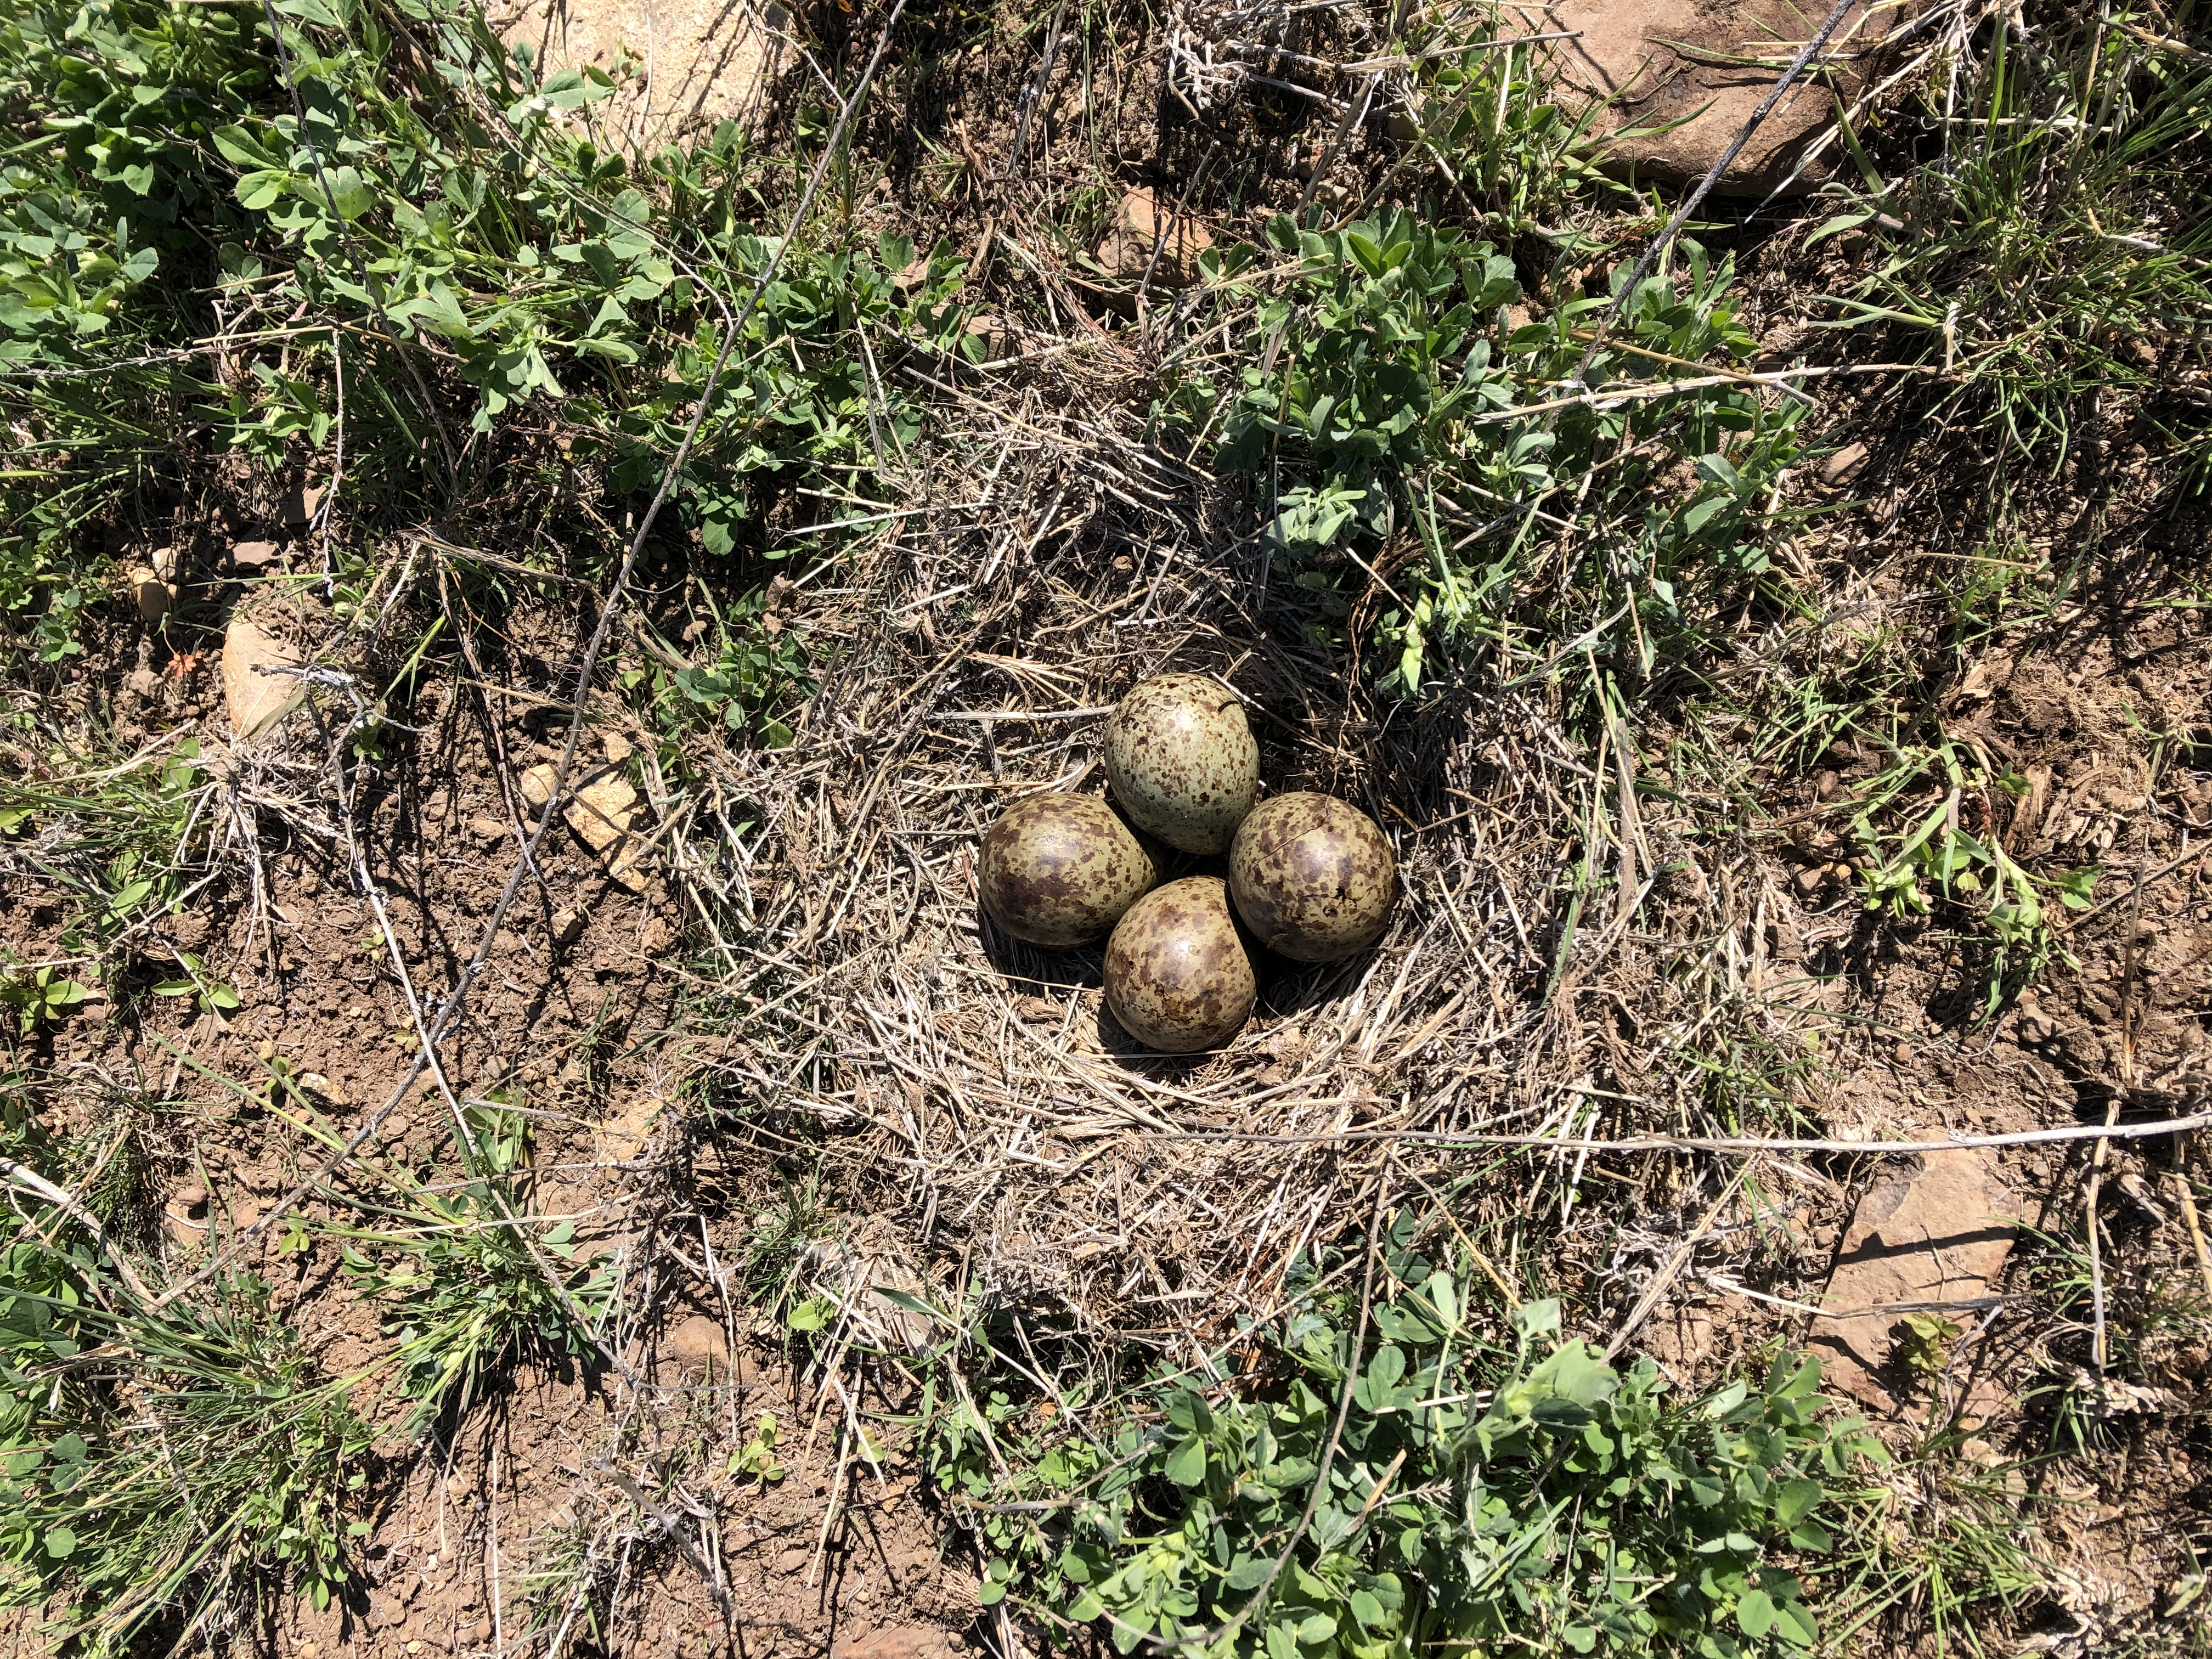 4 dull greenish eggs with brown spots in a ground nest